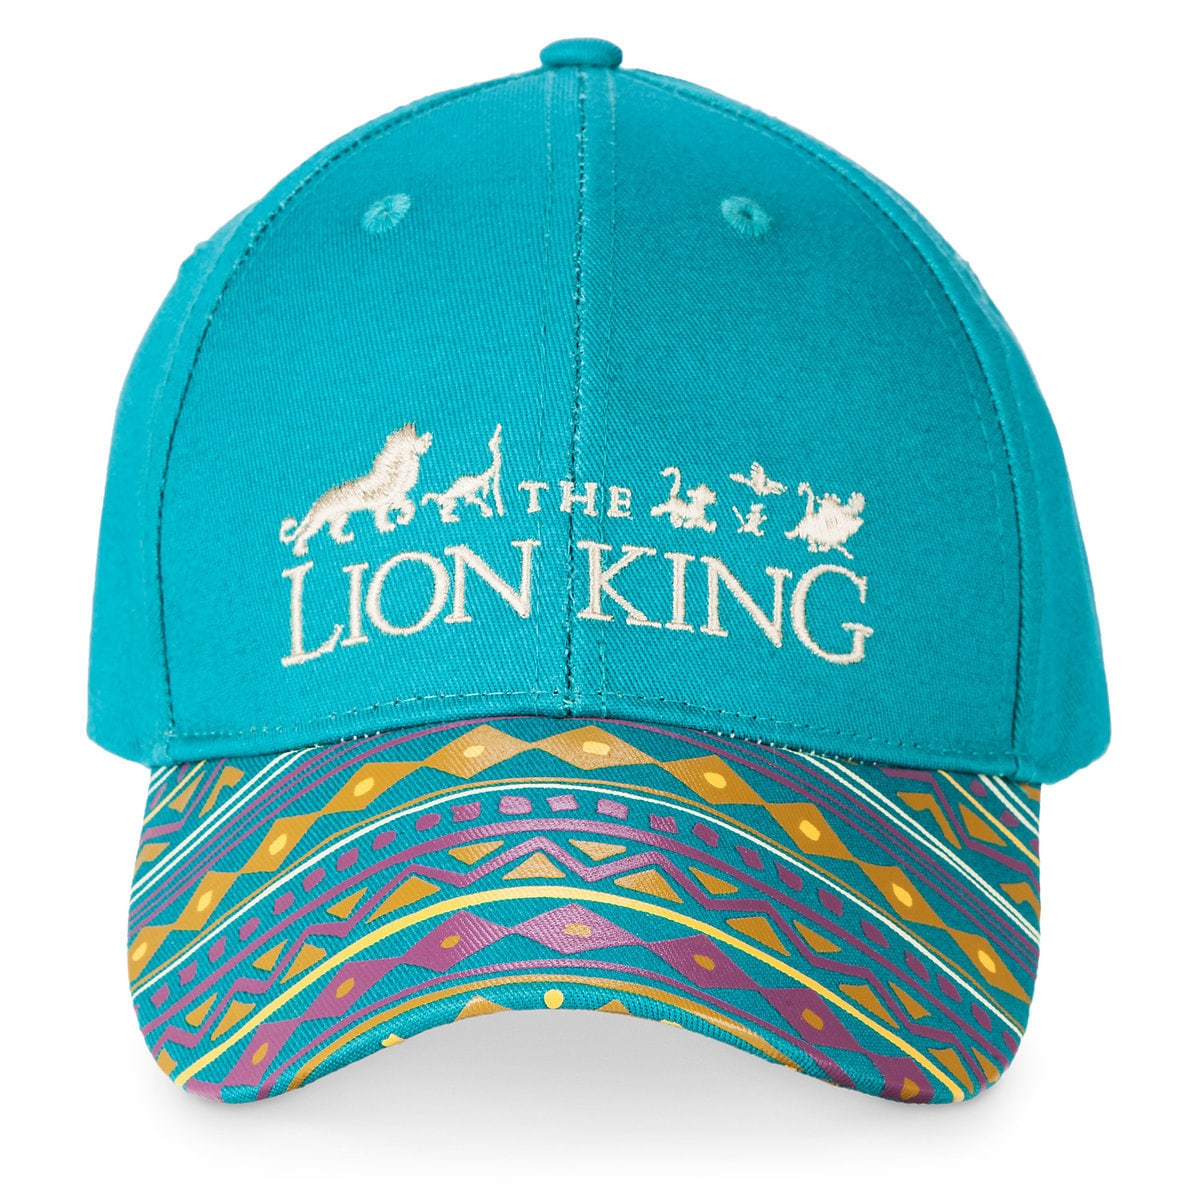 2156290a5c9d1 Product Image of The Lion King Baseball Cap for Adults by Cakeworthy   1